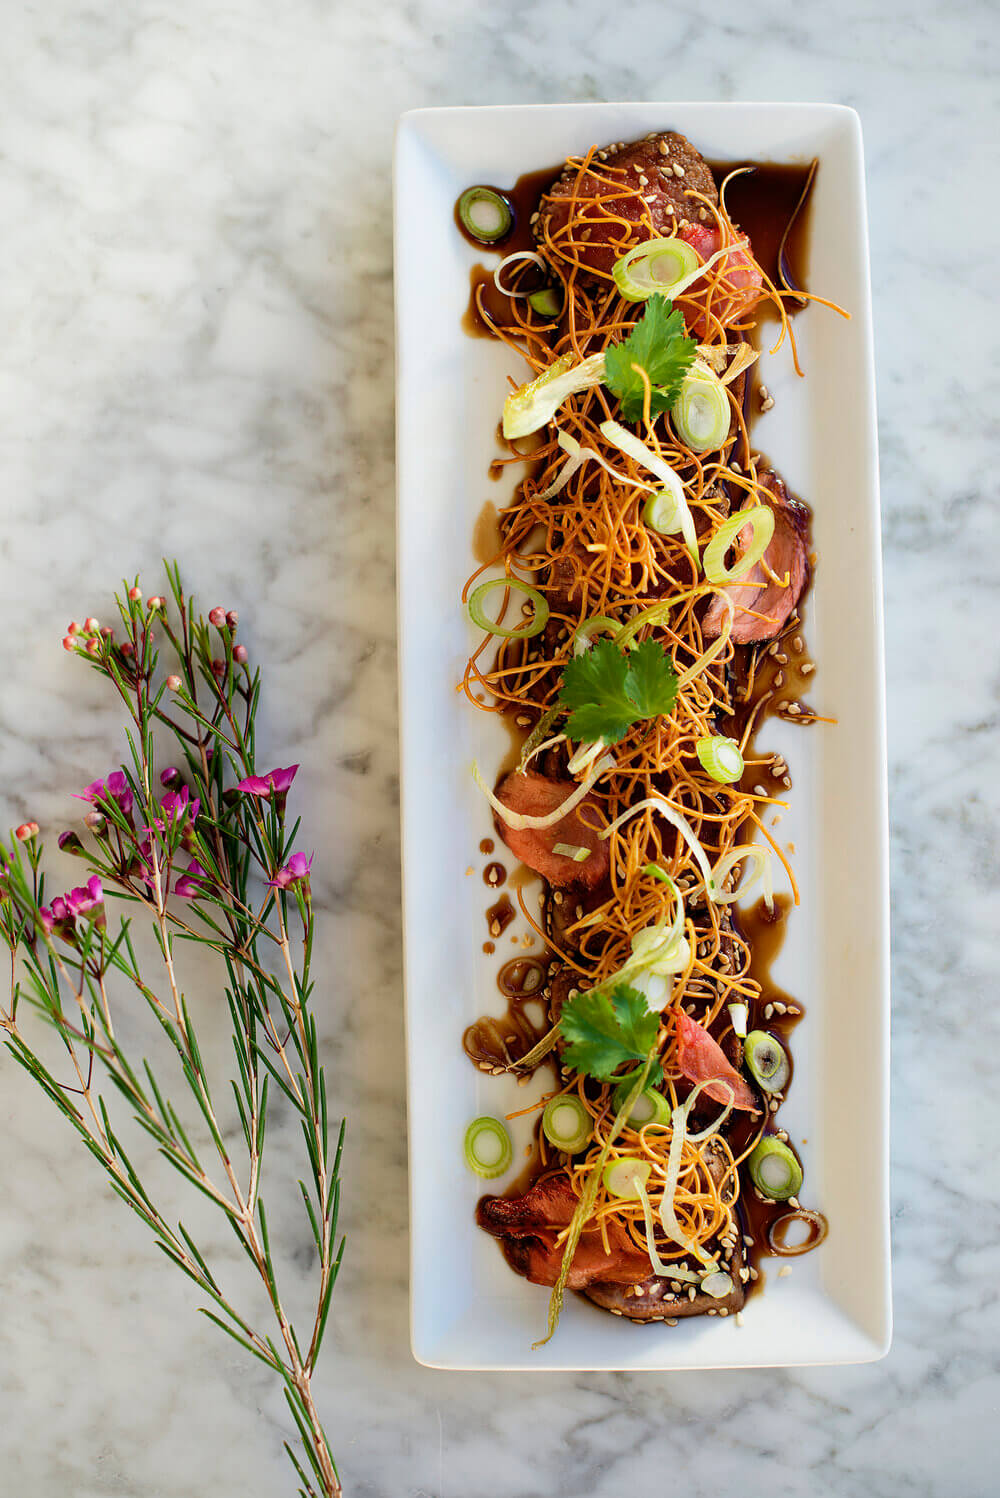 From Our Kitchen - Beef Tataki